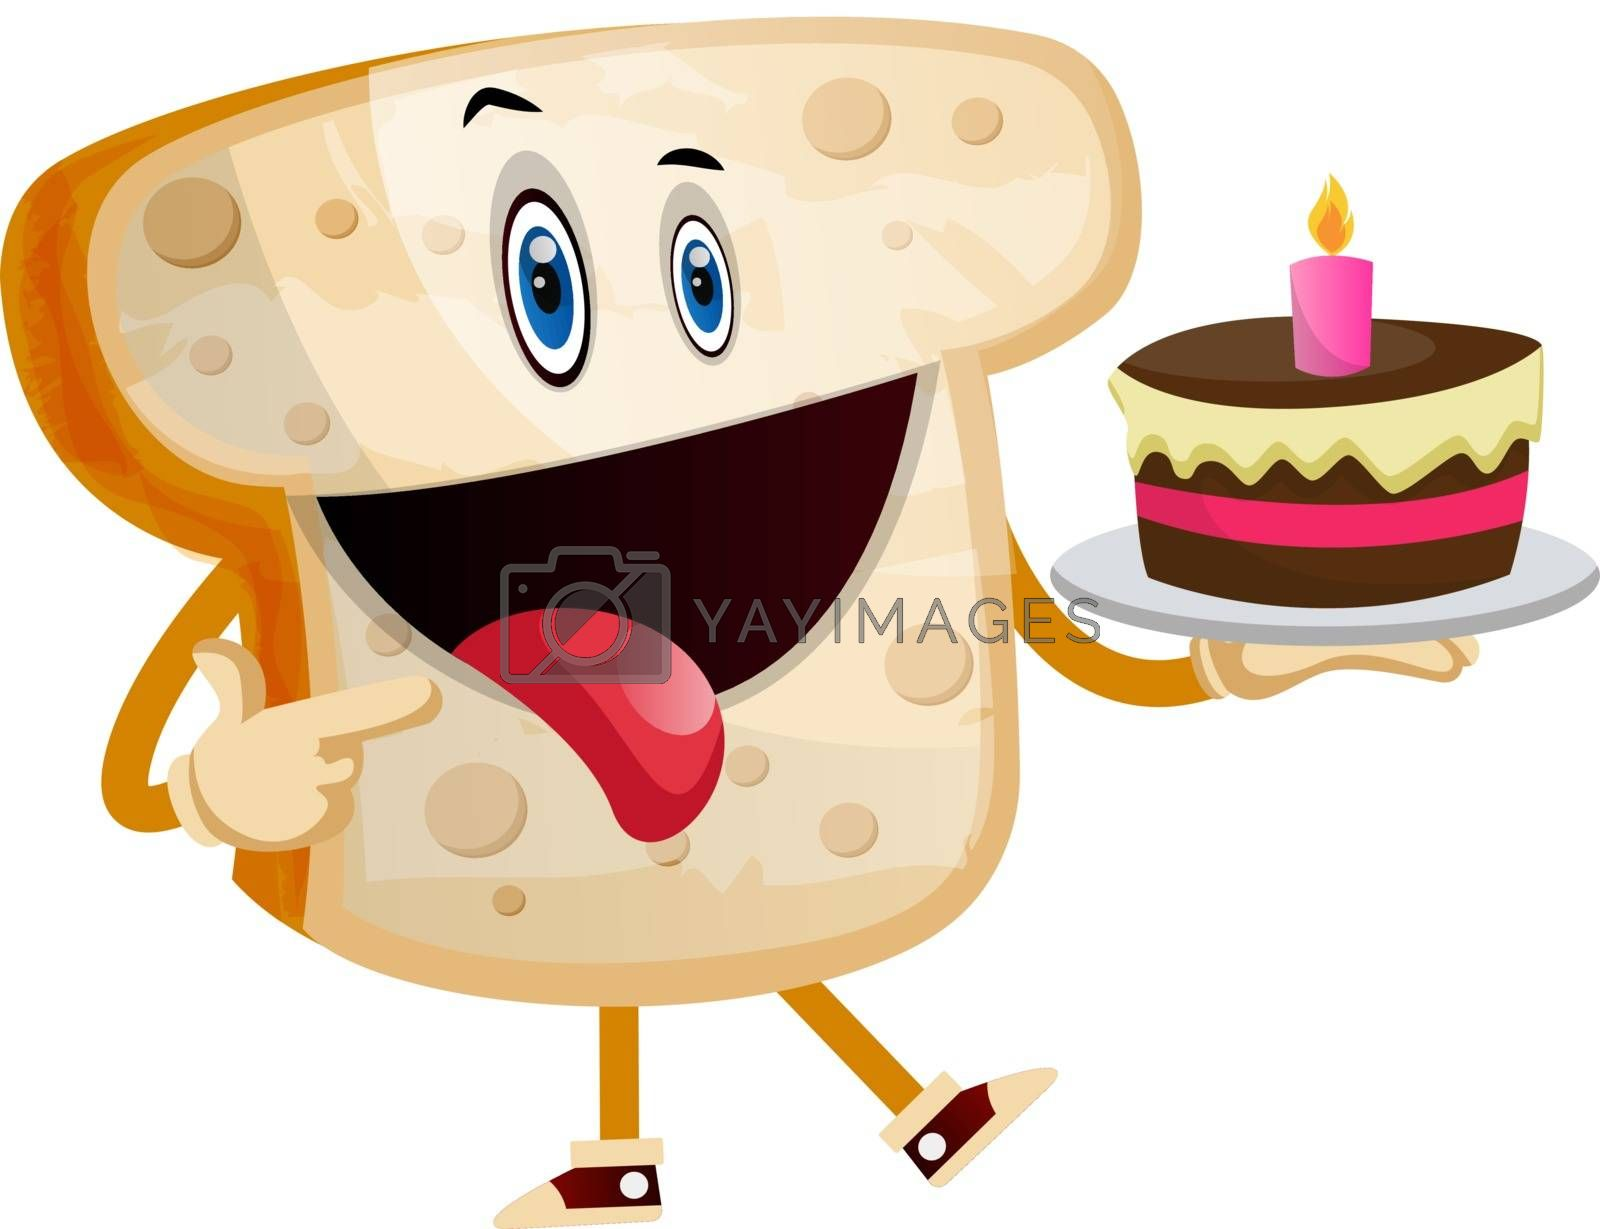 Royalty free image of Sweet Toast illustration vector on white background by Morphart